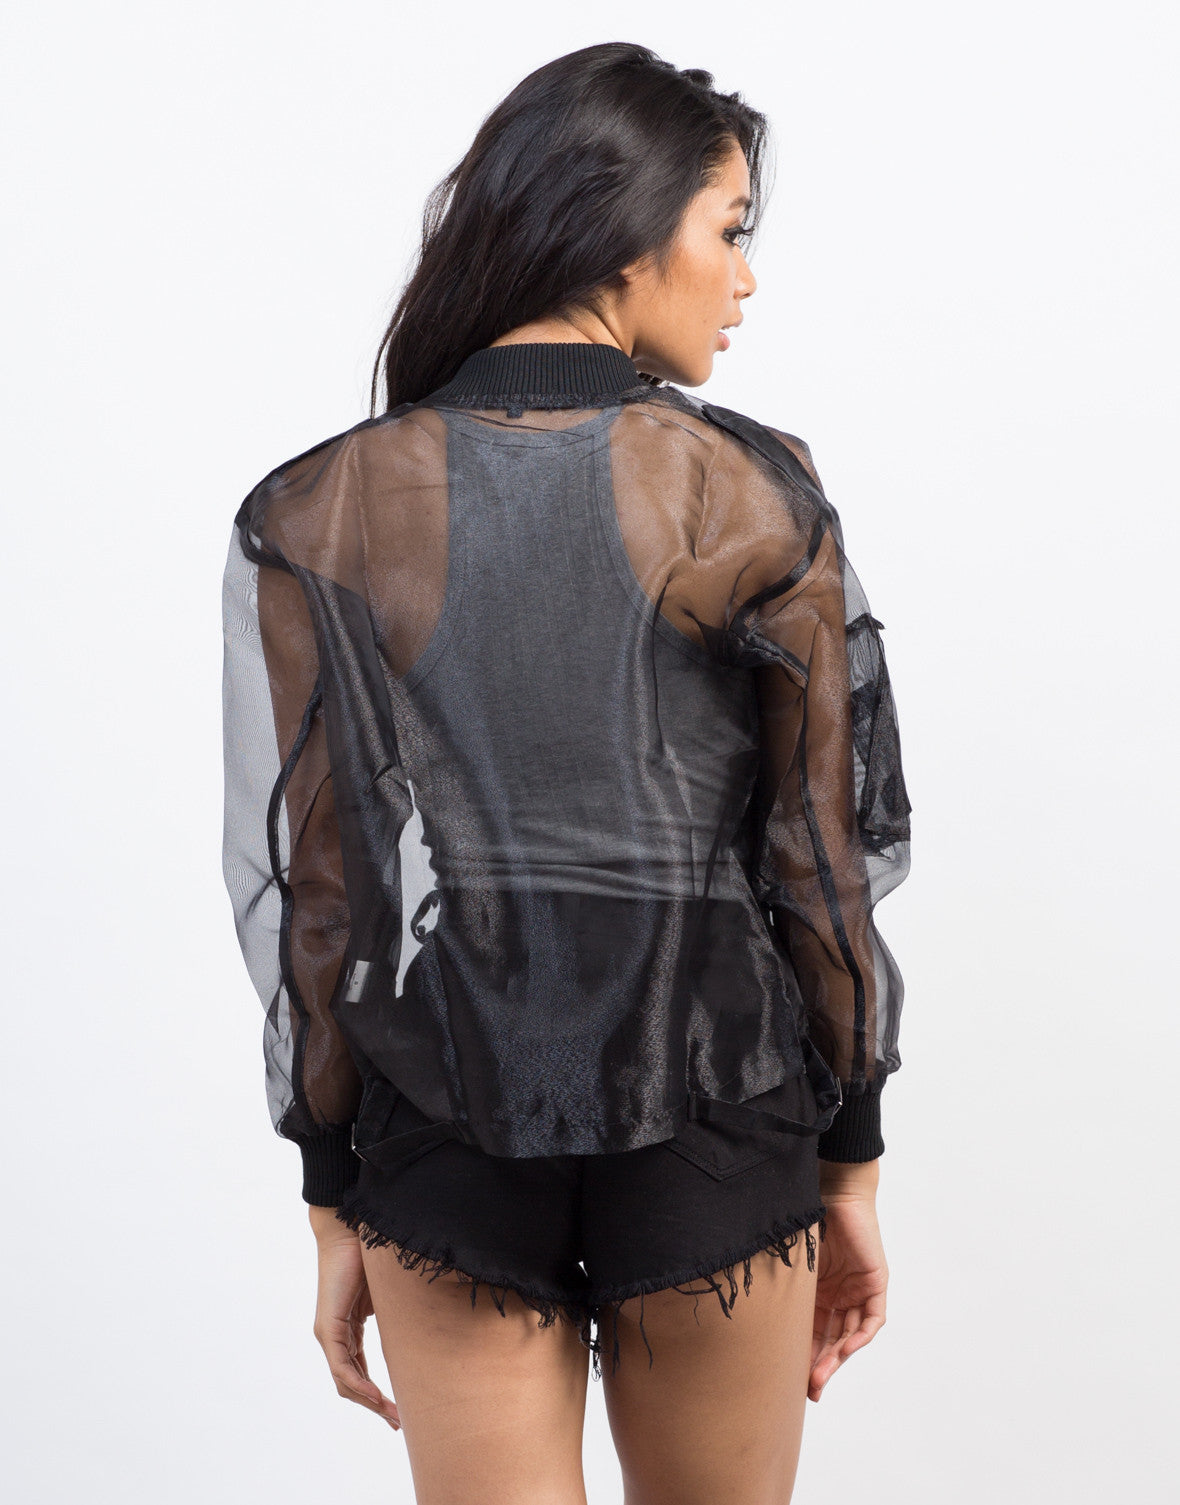 Back View of Organza Bomber Jacket